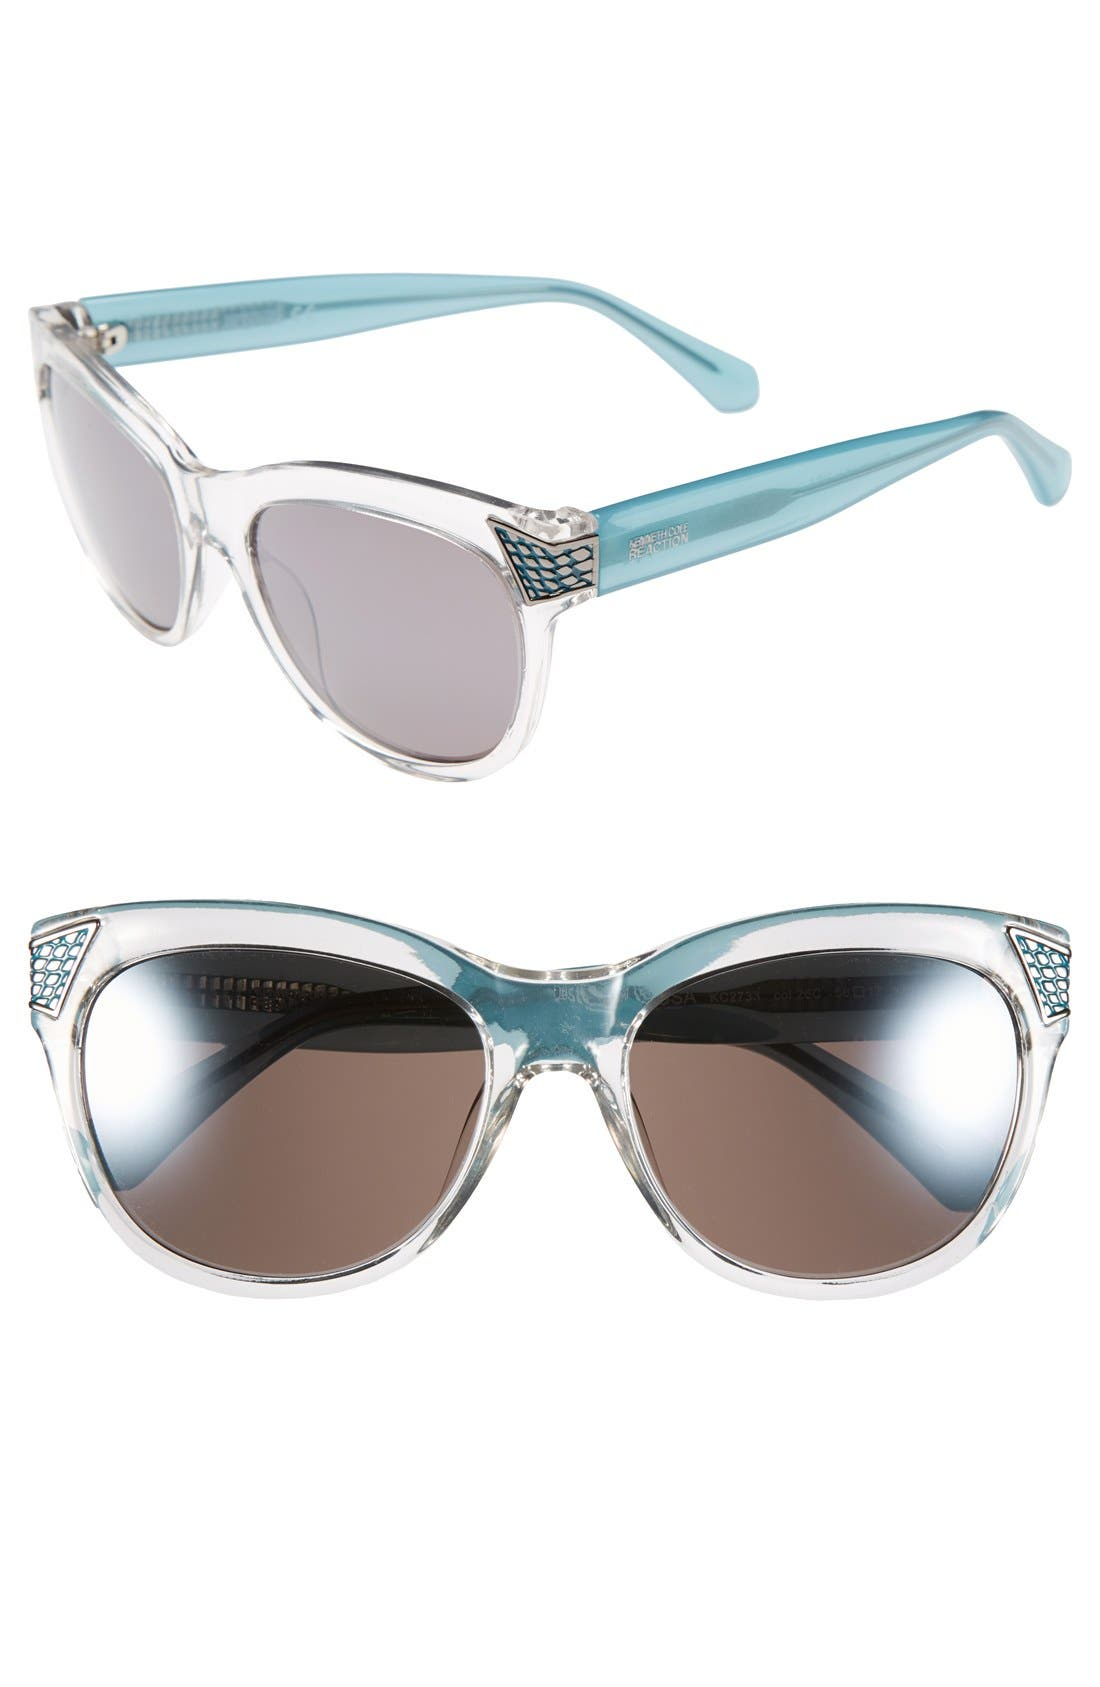 Alternate Image 1 Selected - Kenneth Cole Reaction 56mm Retro Sunglasses